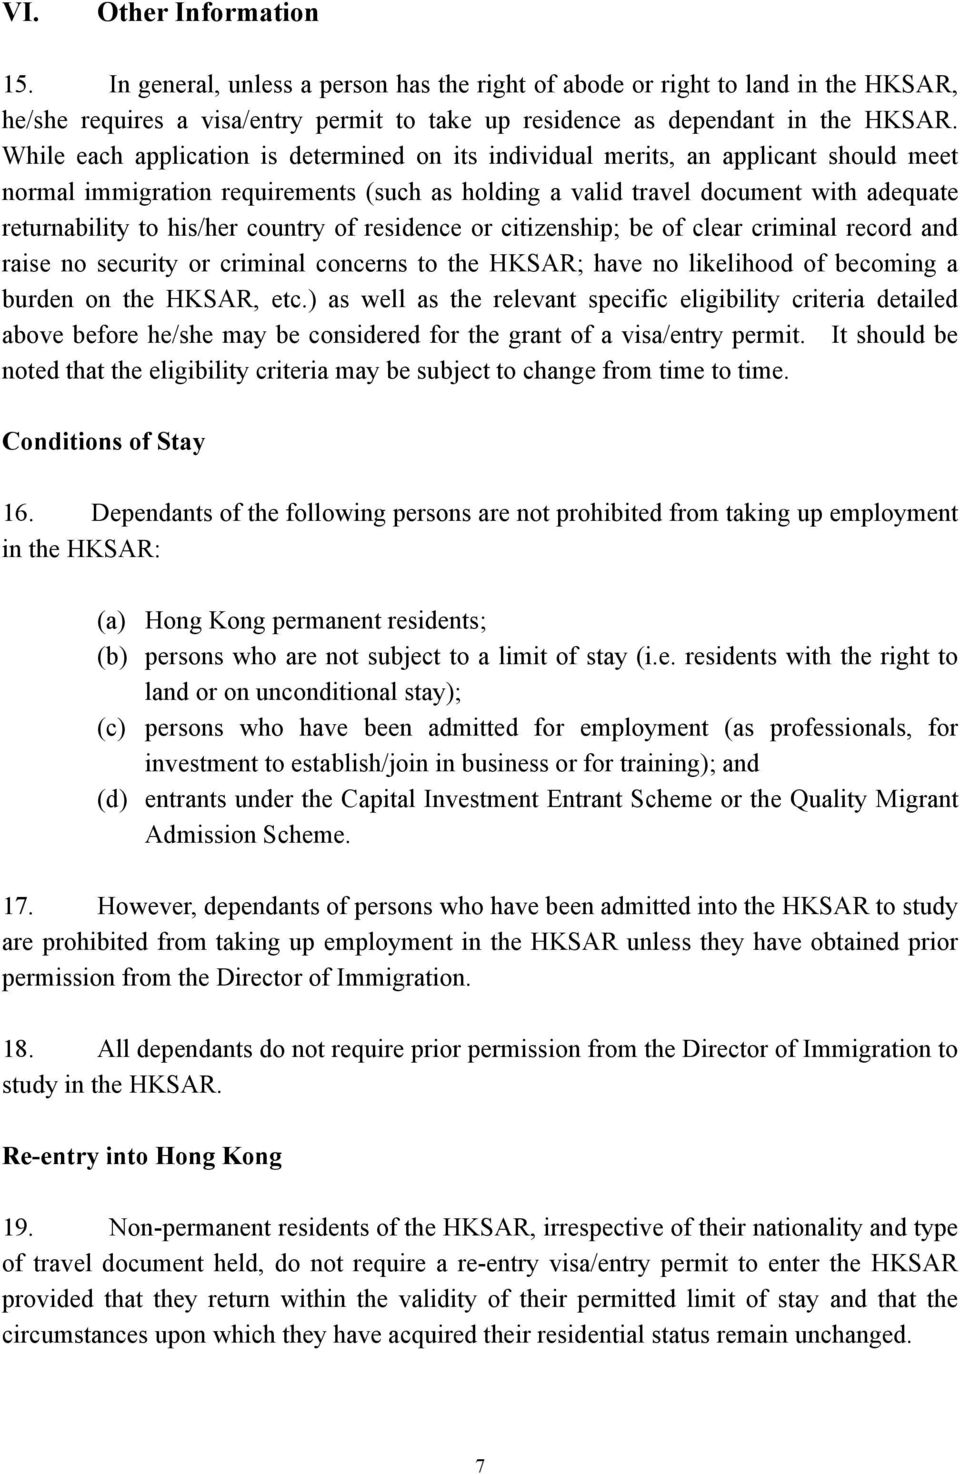 country of residence or citizenship; be of clear criminal record and raise no security or criminal concerns to the HKSAR; have no likelihood of becoming a burden on the HKSAR, etc.